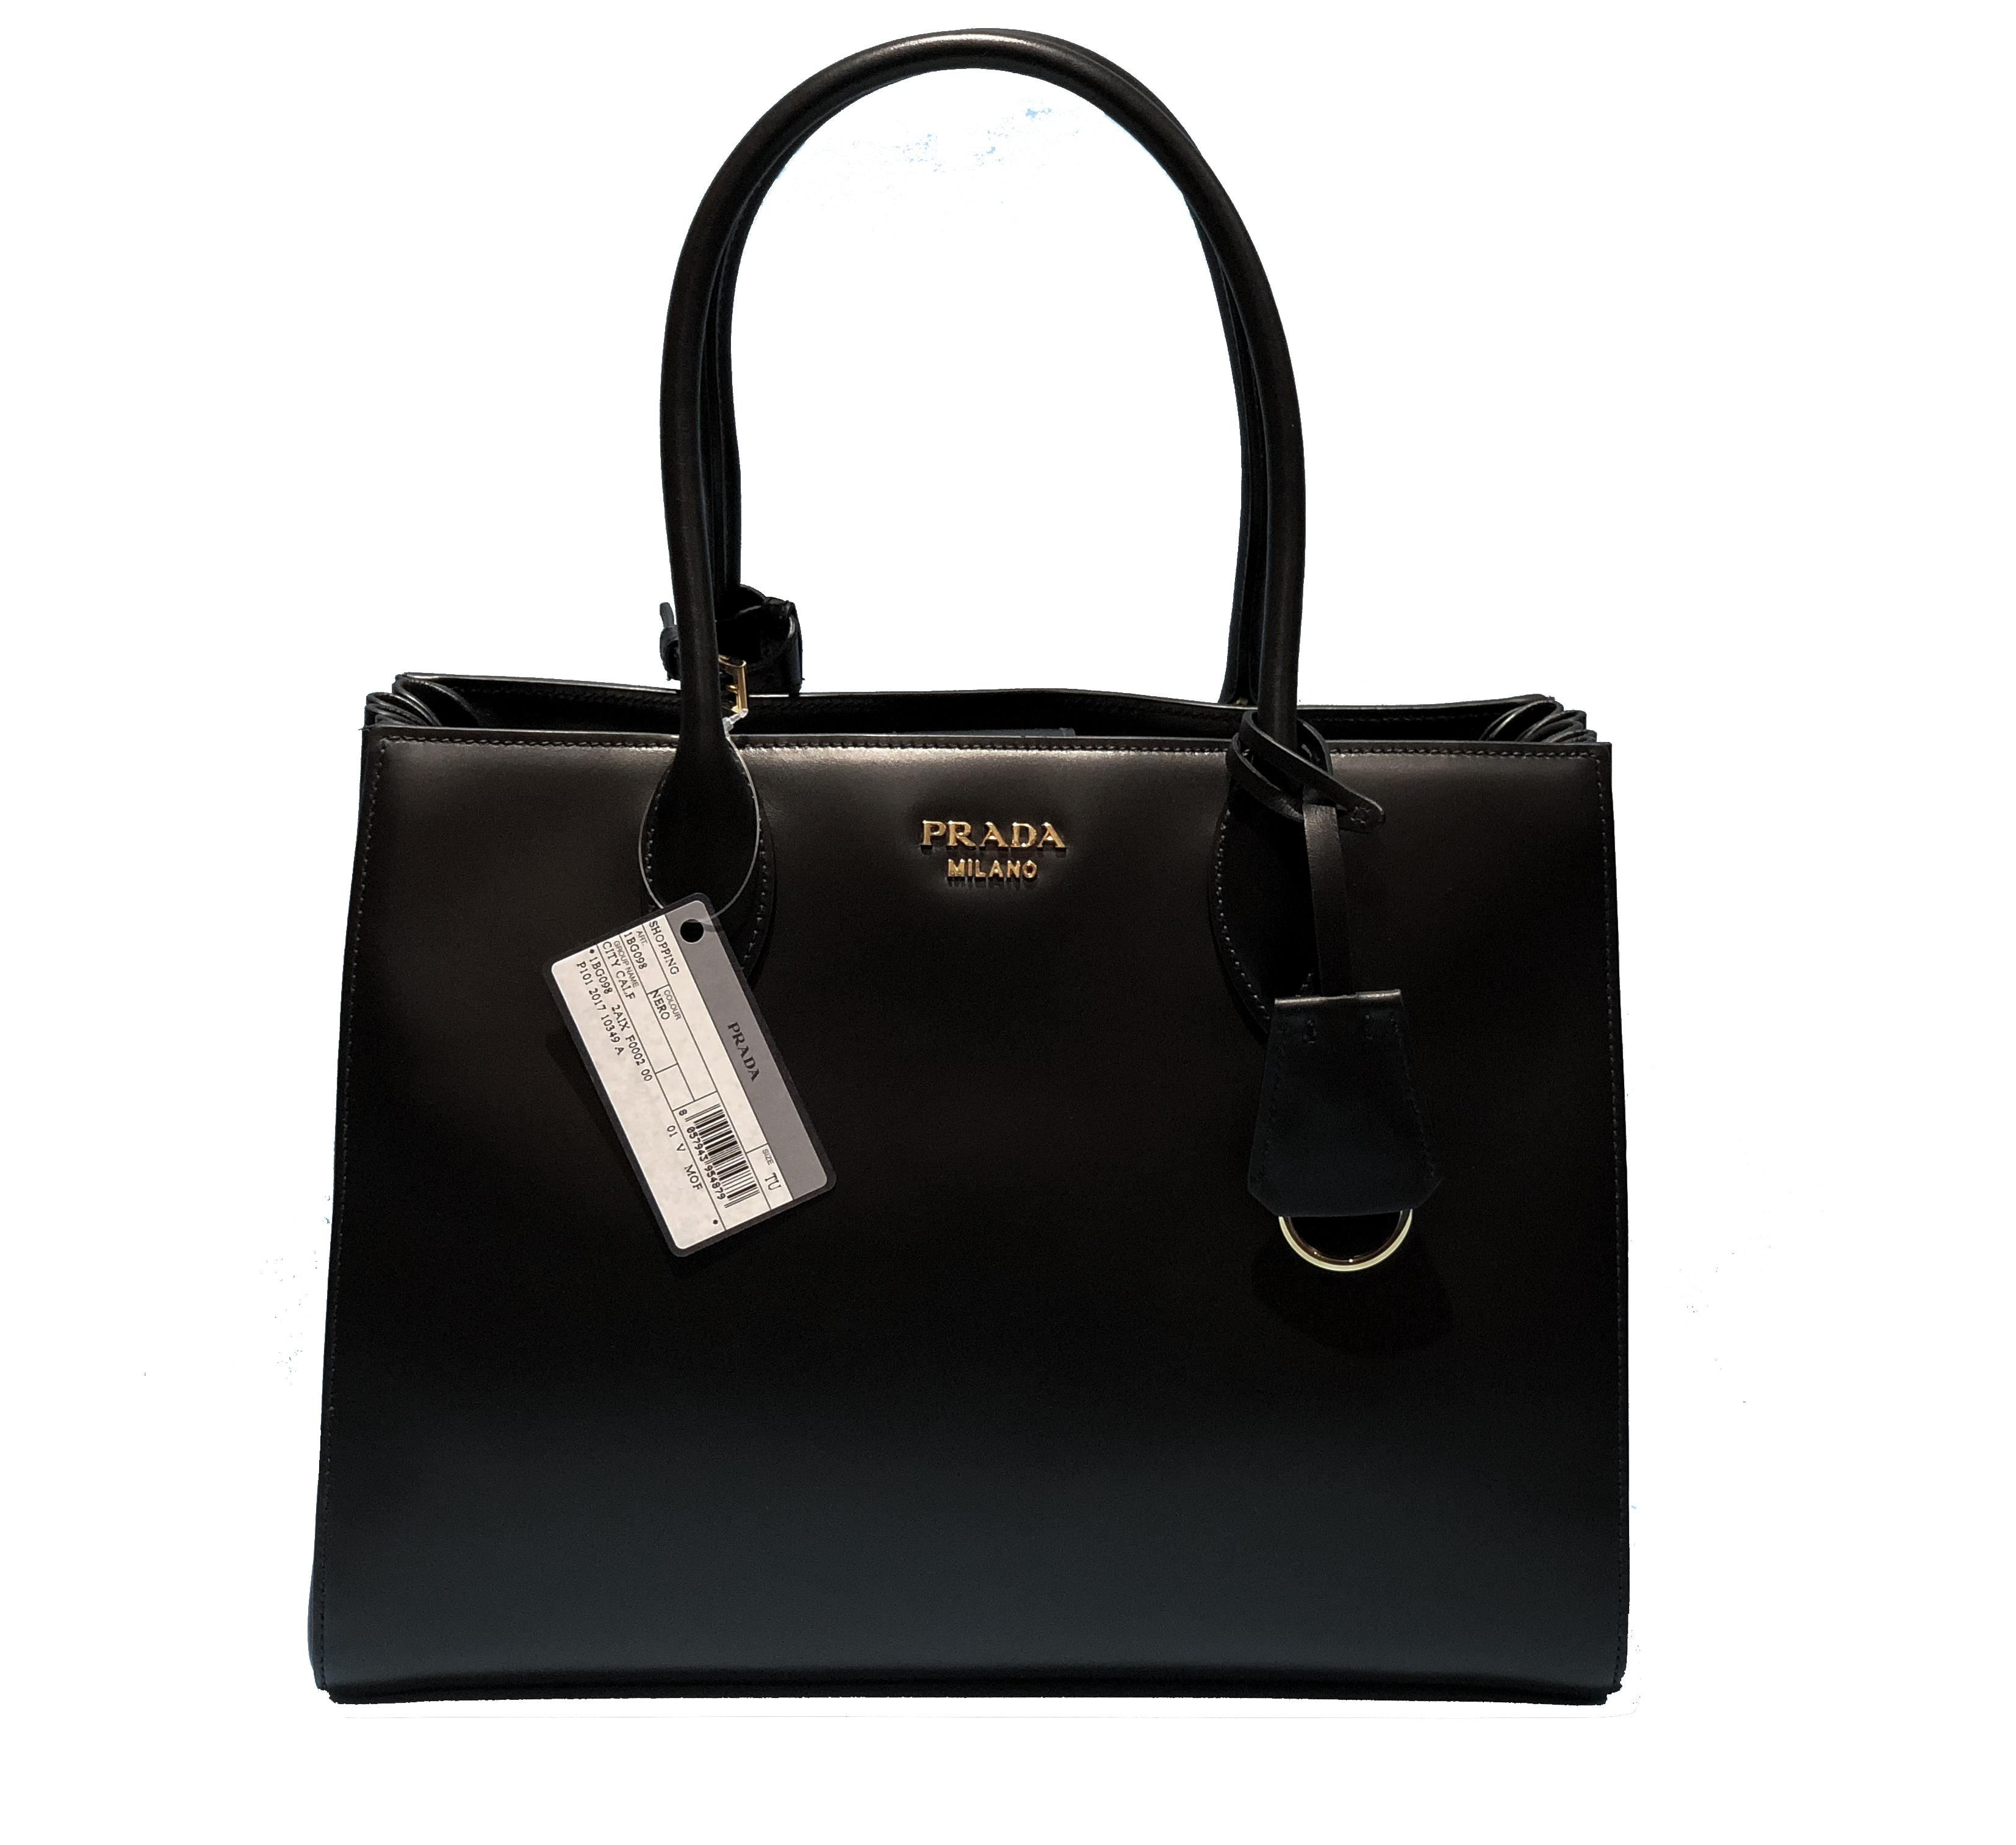 e793bc6c6a ... coupon for prada made in italy bibliotheque double handle golden  hardware shoulder tote in black 1c364 ...